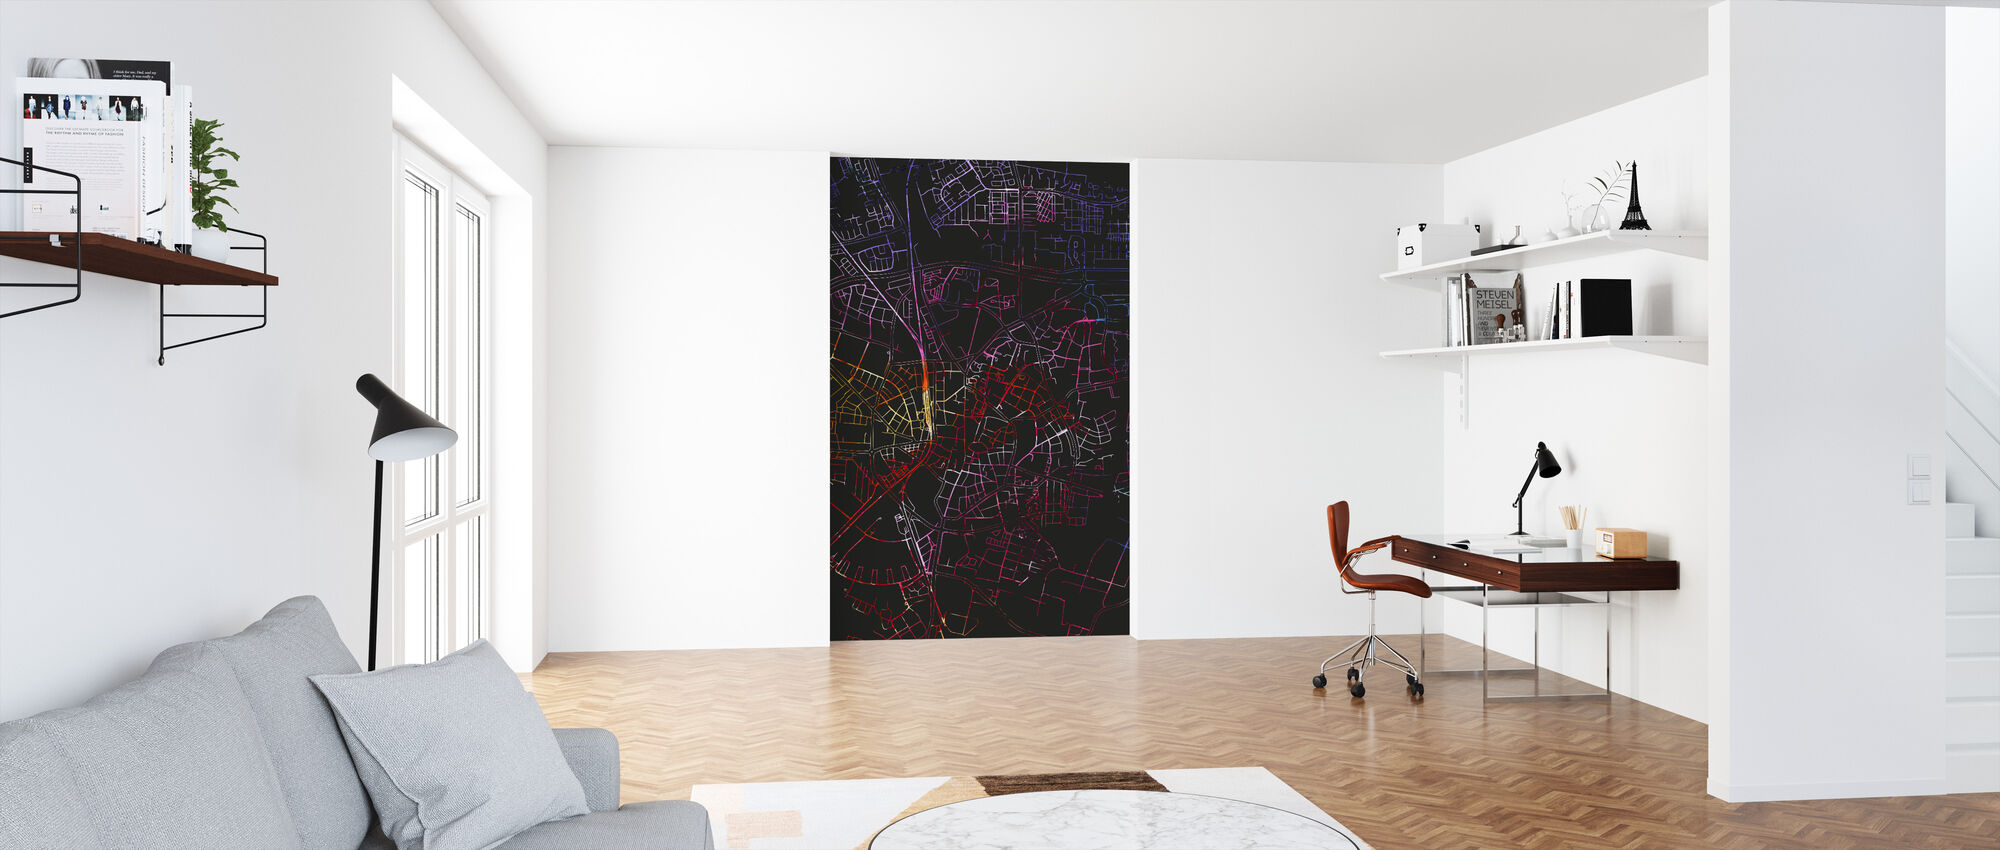 Lund in Sweden - Map - Wallpaper - Office